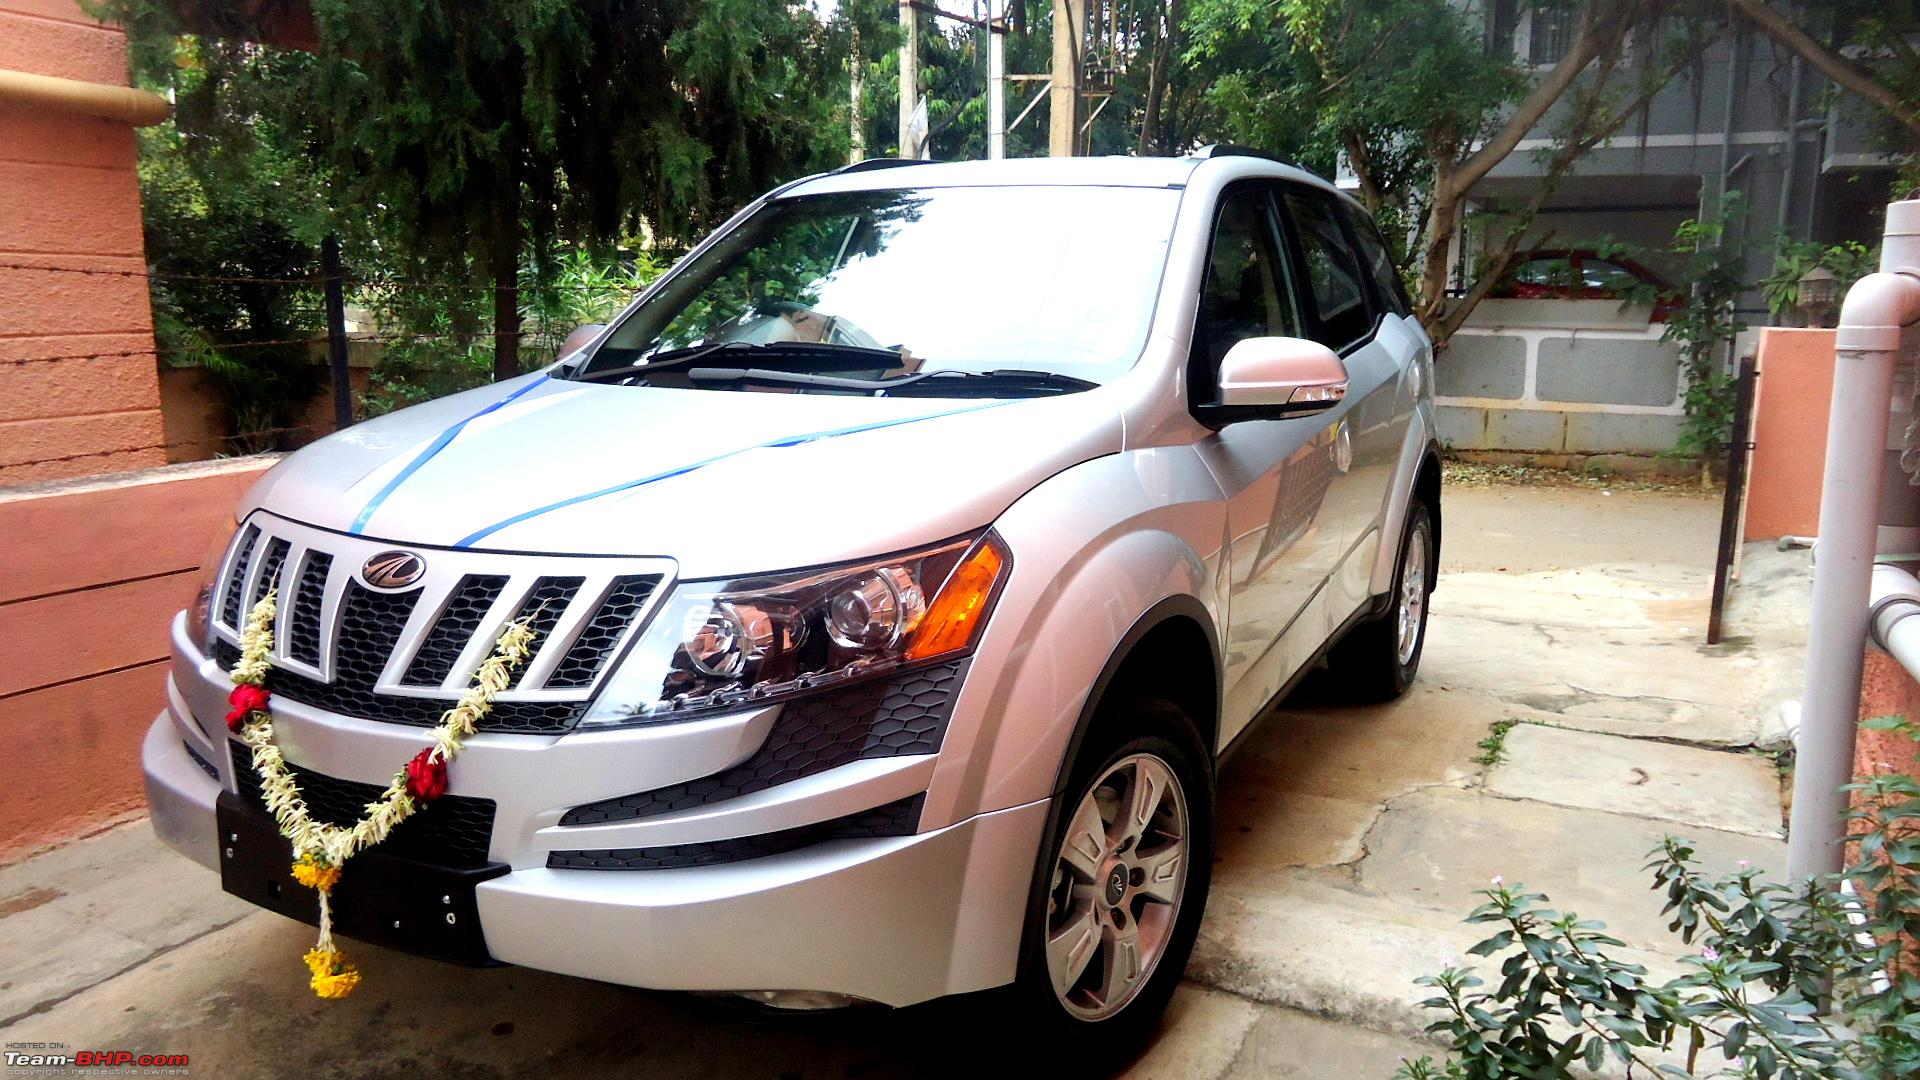 Mahindra XUV500 : Test Drive & Review - Page 353 - Team-BHP